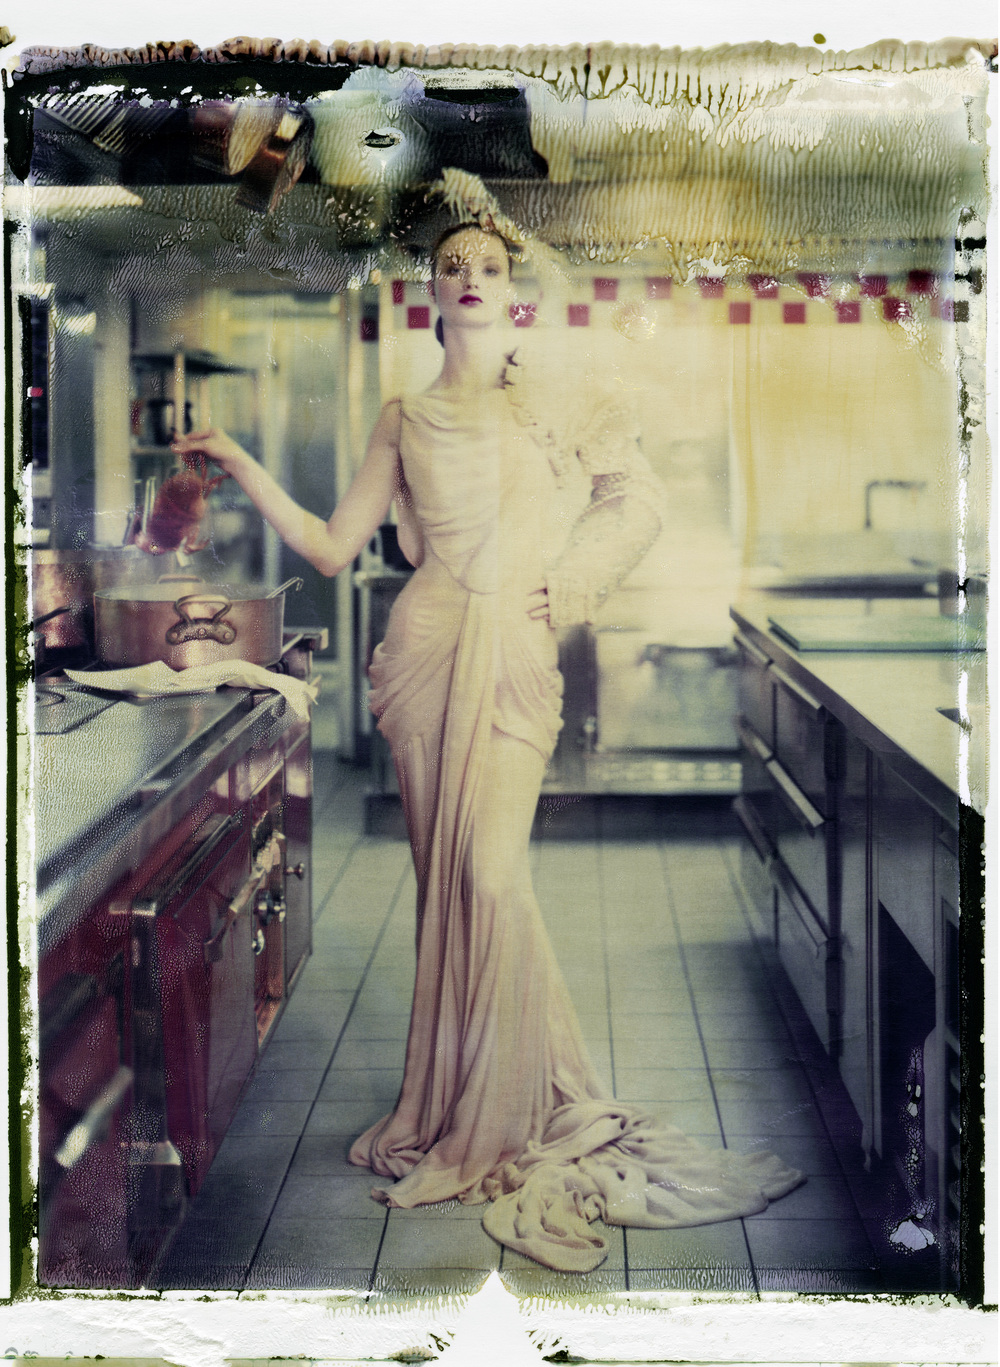 MY LITTLE DARLING, DIOR – HAUTE COUTURE WINTER 2006 – N°30, 2009.   Chromogenic print from original polaroid, 43 x 32 inches (110 x 80 cm).   ©  Cathleen Naundorf / Courtesy Edwynn Houk Gallery, New York & Zürich